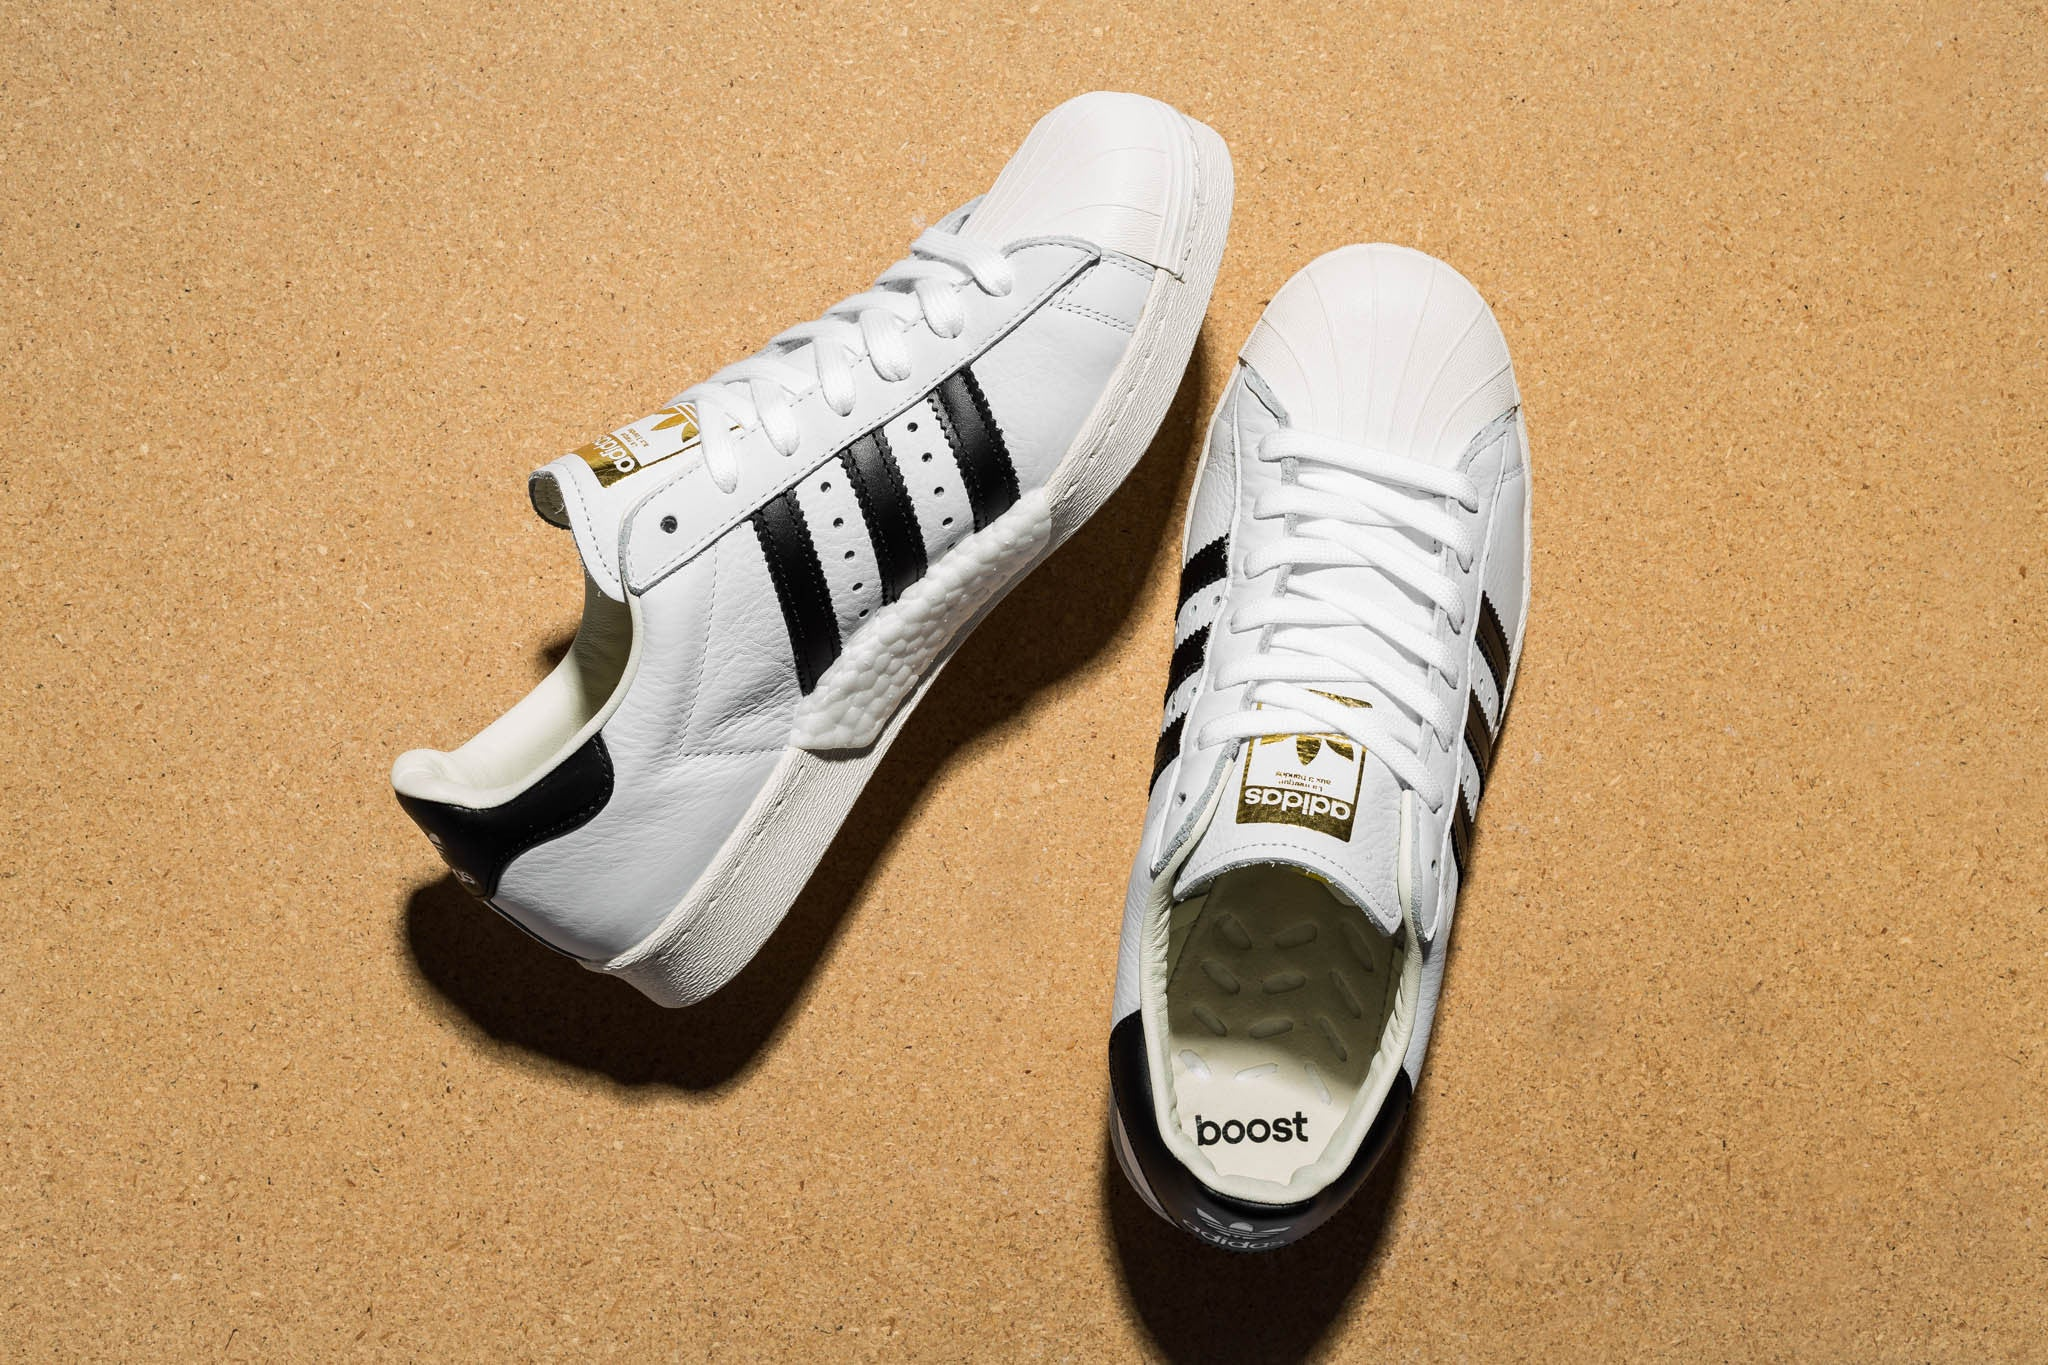 02a00c7bfc Launched in 1970 as a revolutionary basketball performance style, the adidas  Superstar shoe was the sport's first all-leather sneaker.